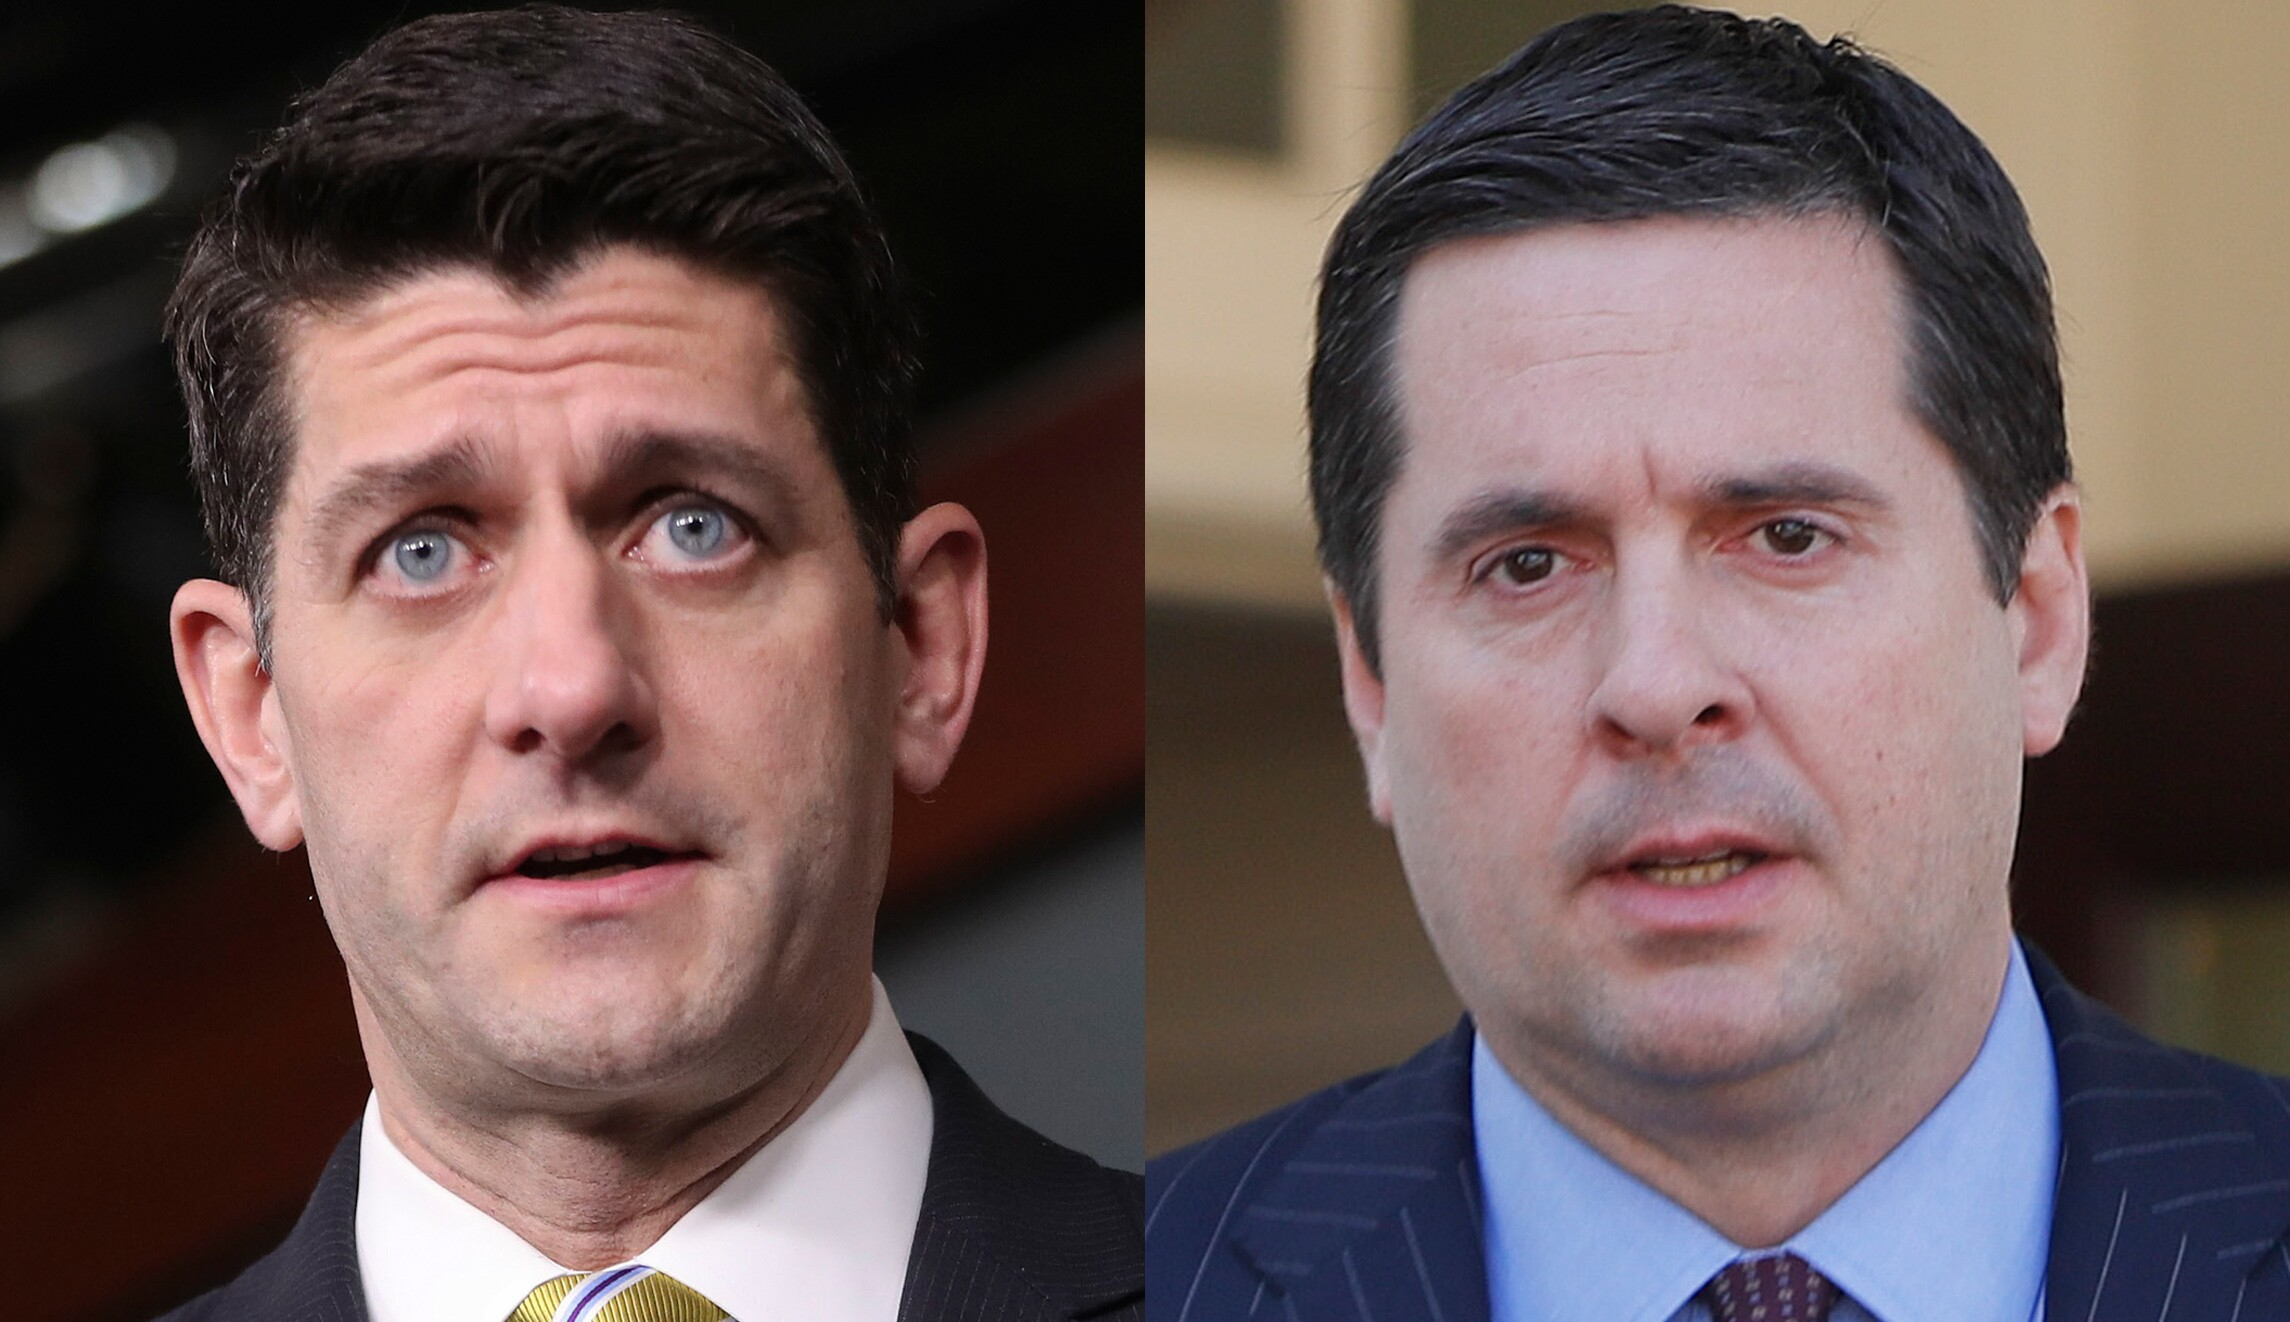 Paul Ryan and Devin Nunes